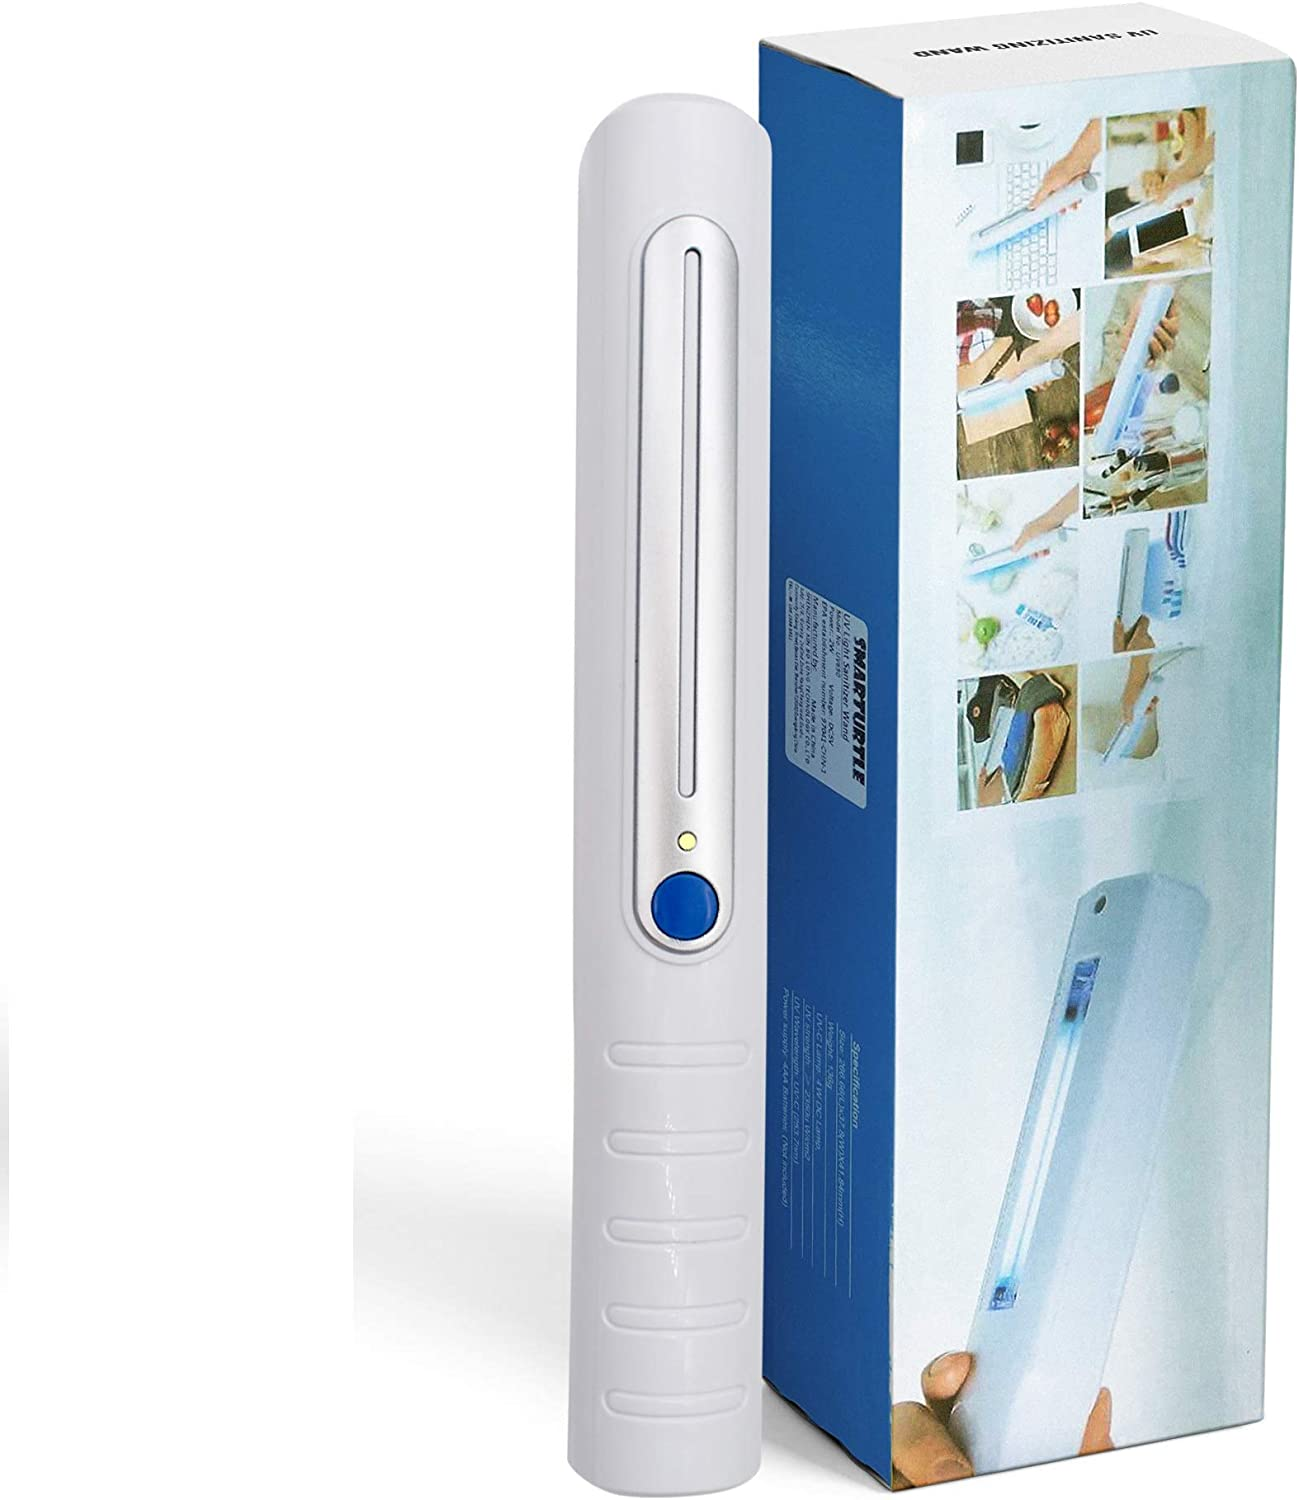 UV Light Sanitizer Portable Wand Travel UV-C Light Handheld sterilizer lamp Hand Ultraviolet Light Sanitizer Uv Sanitizer Light desinfection for Hotel Toilet Office Car